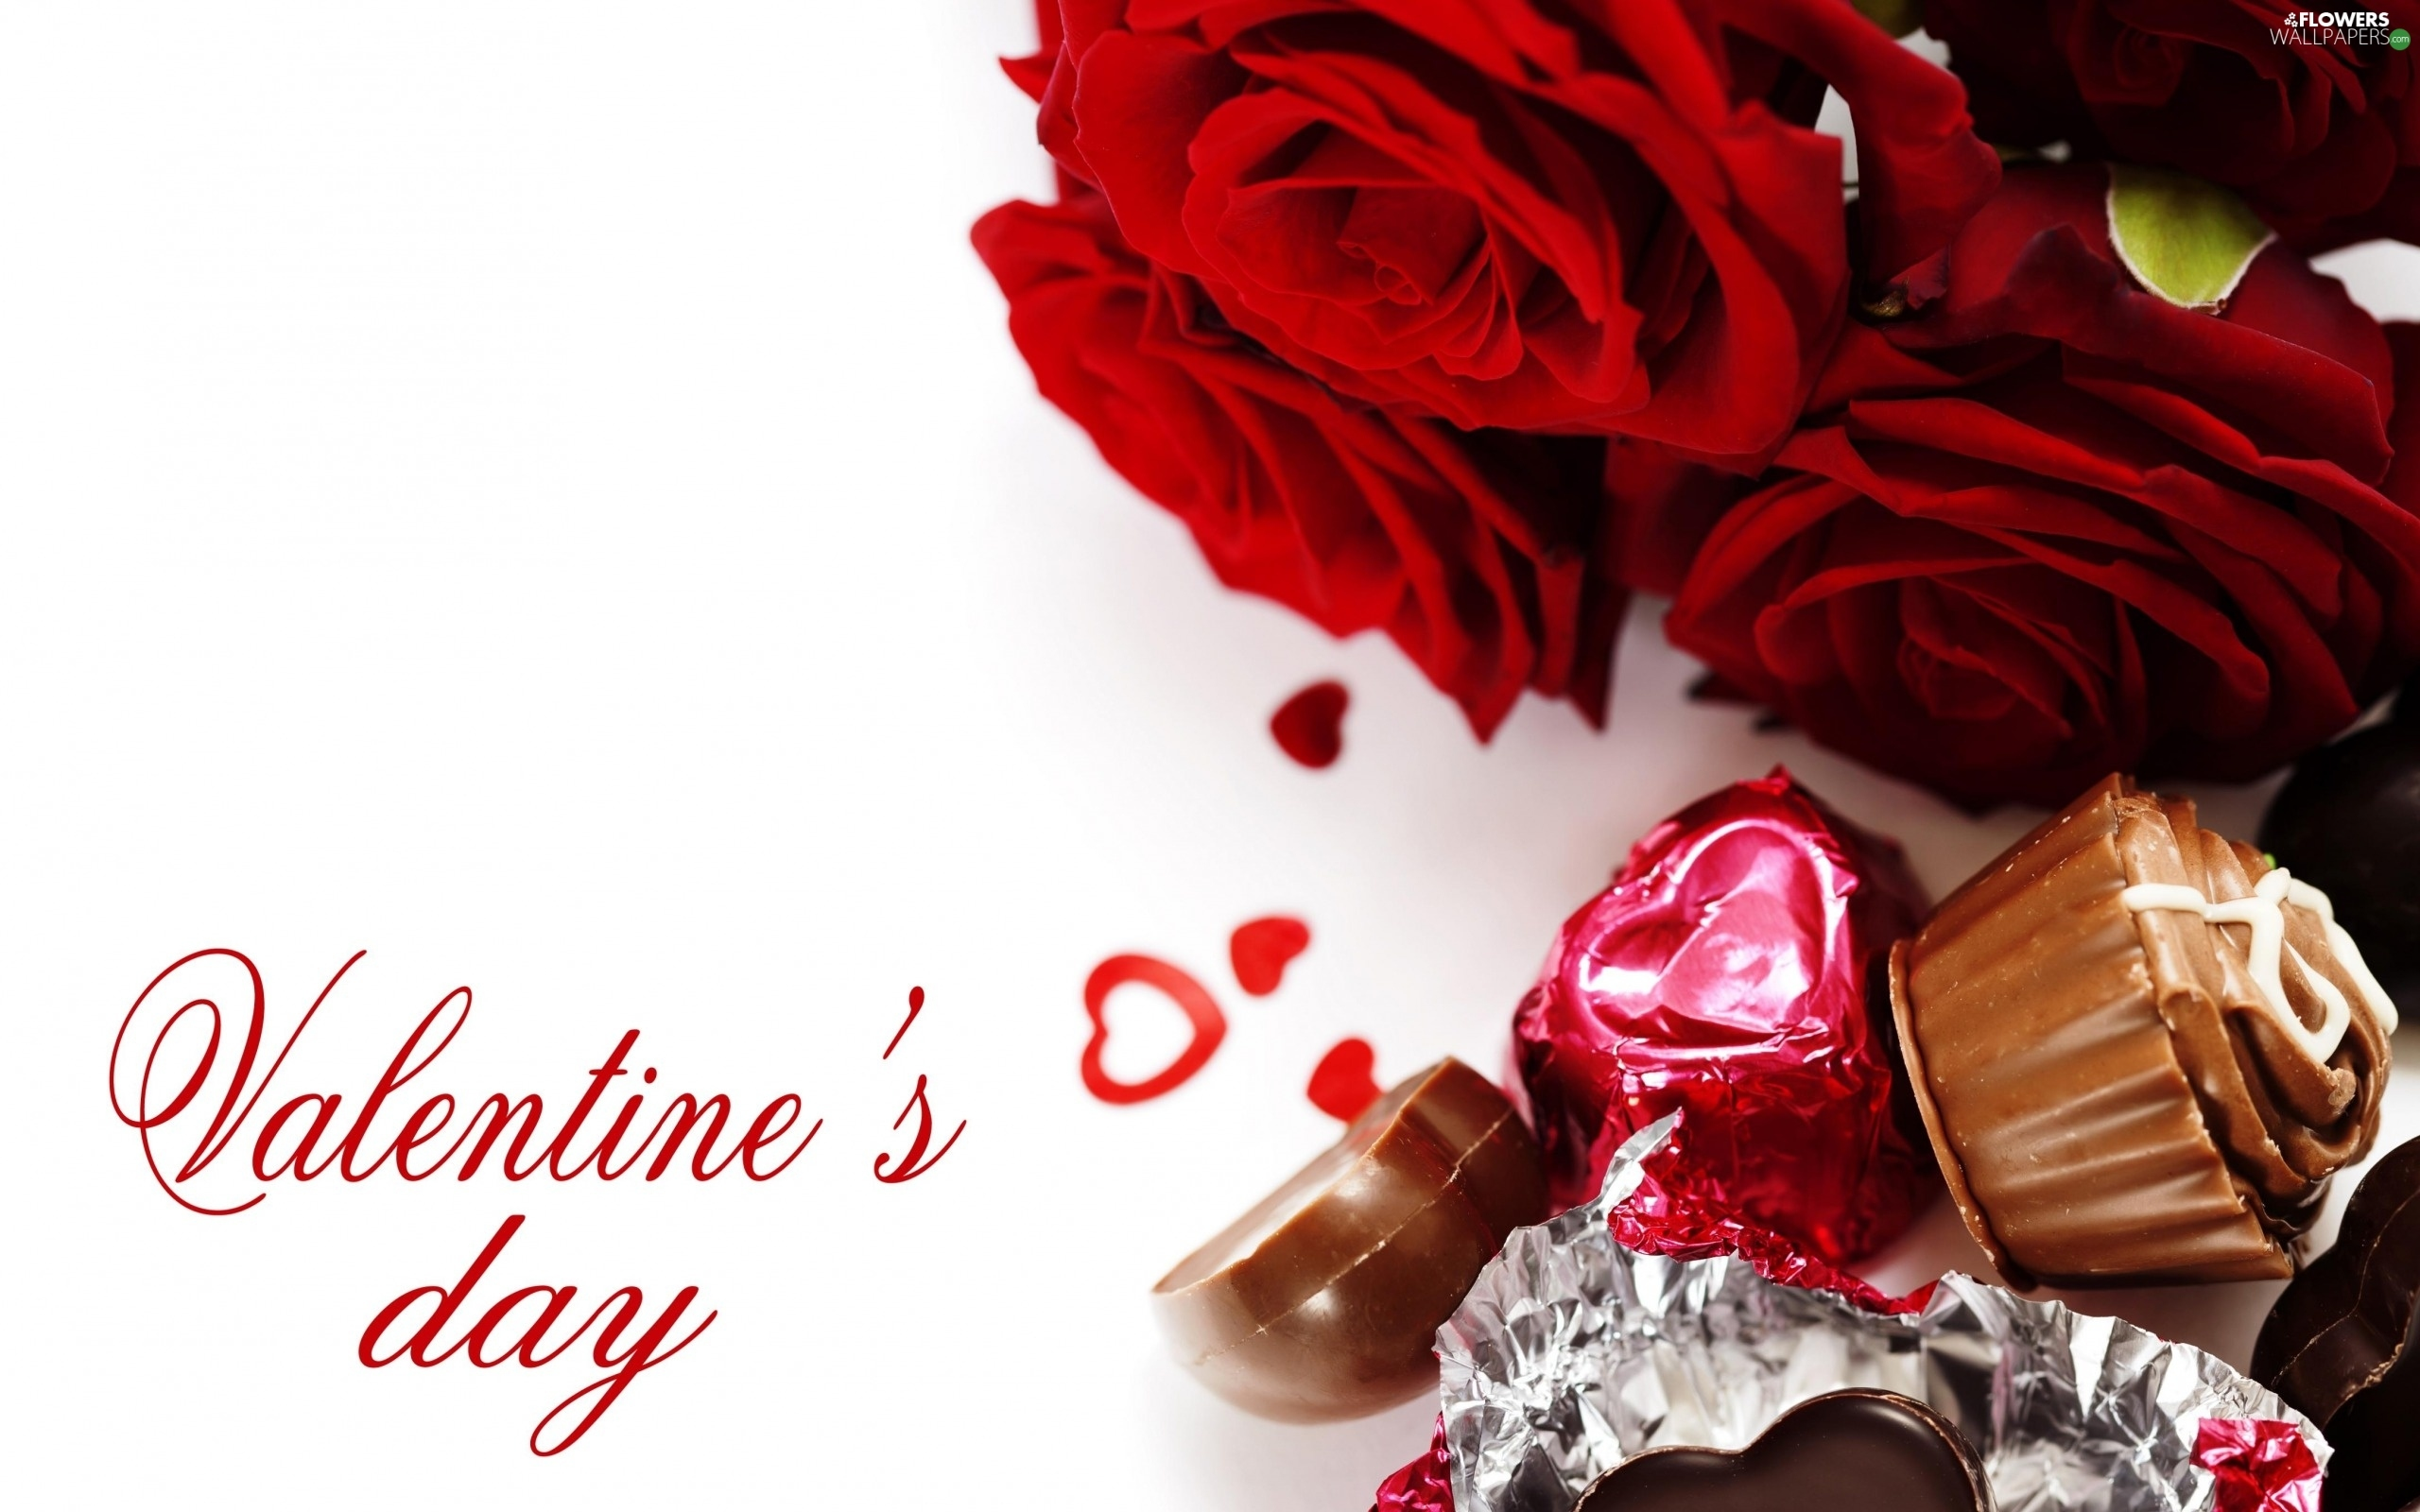 Roses pralines valentine 39 s day flowers wallpapers - Valentine s day flower wallpaper ...